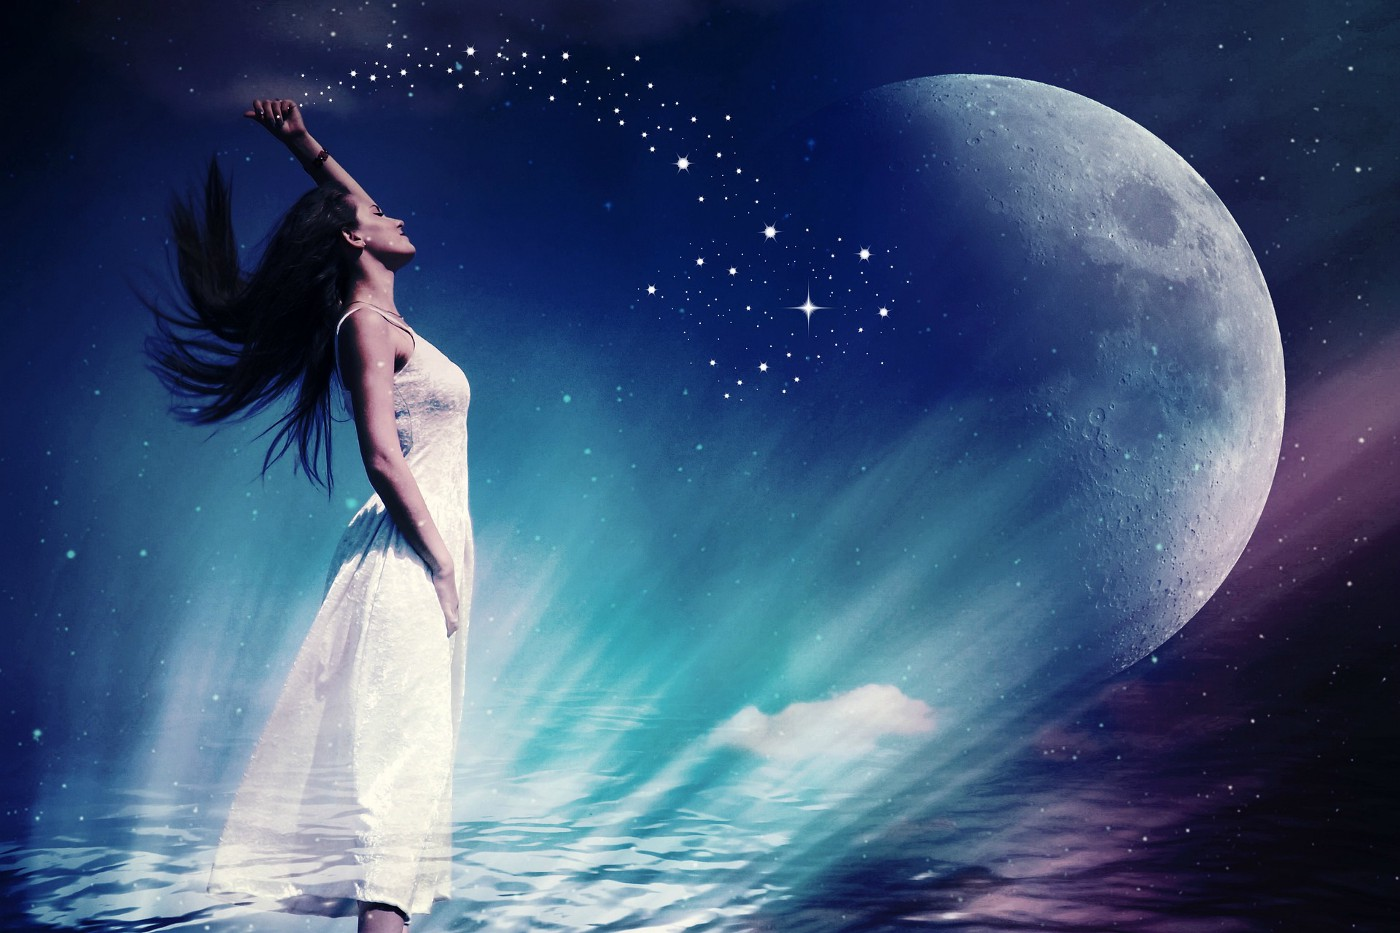 Fantasy image of woman standing infront of moon